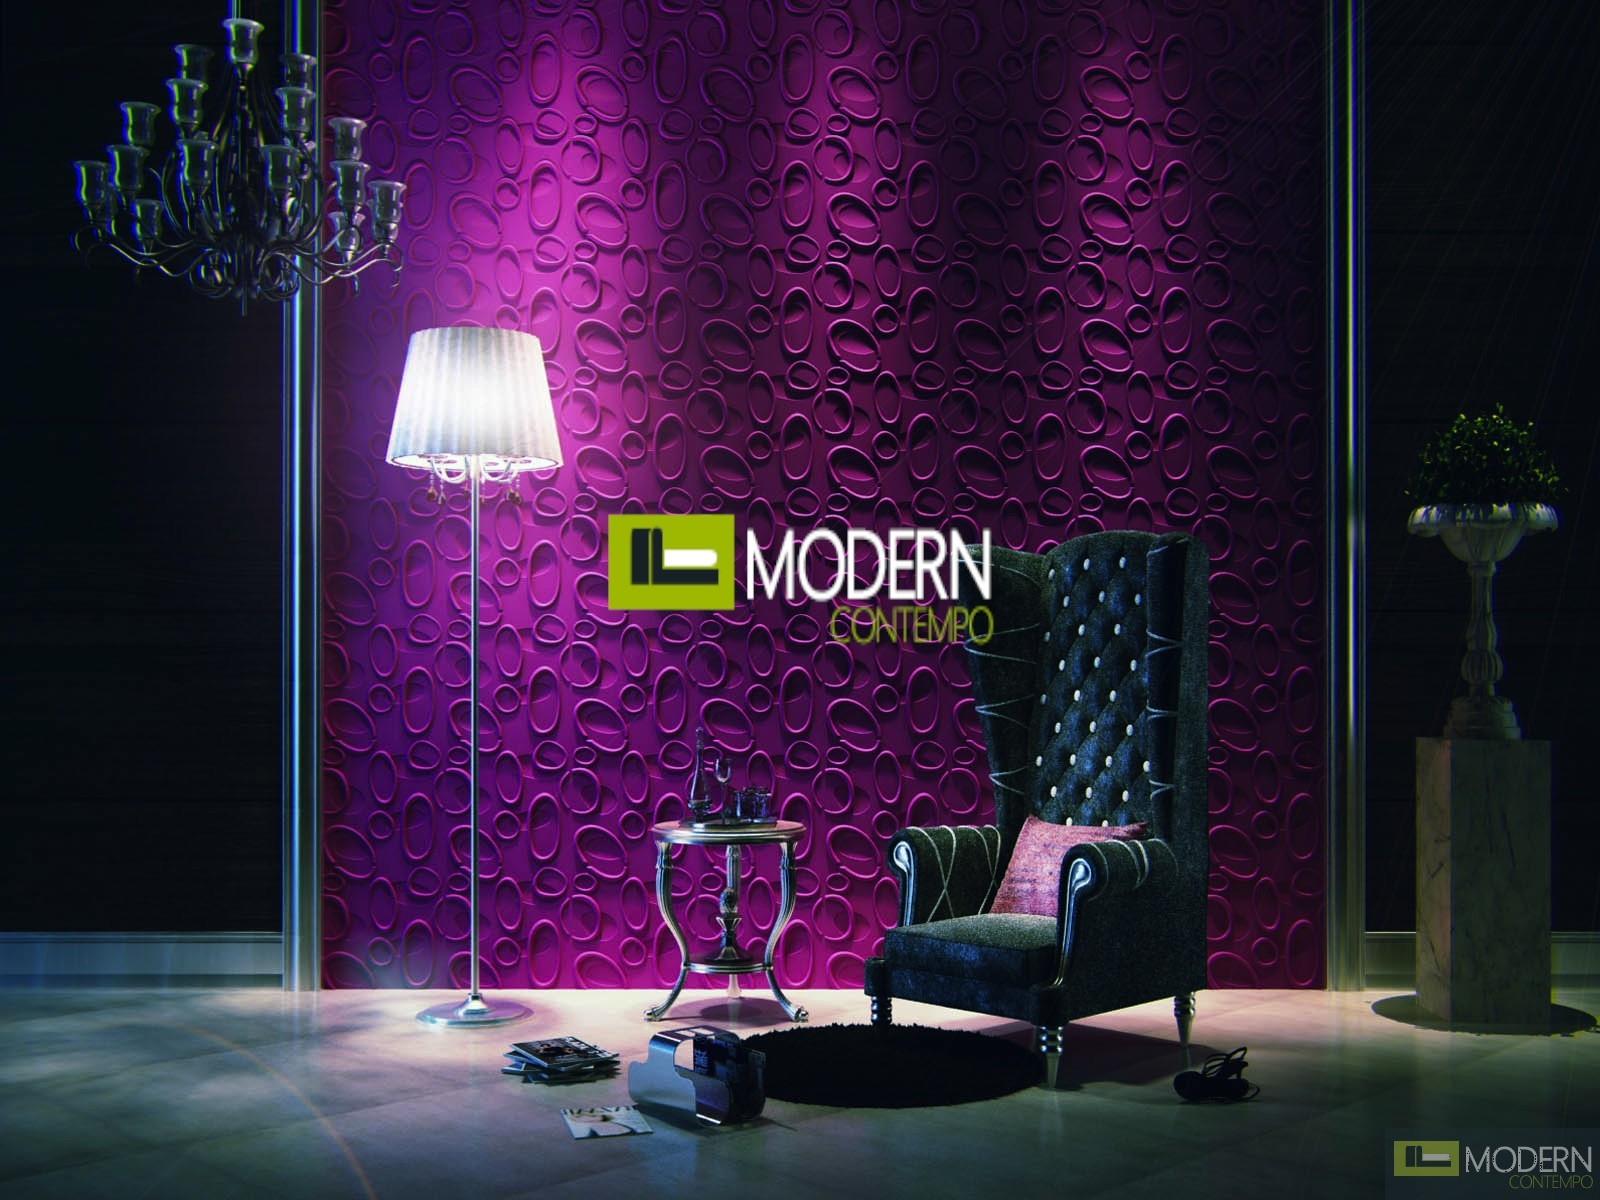 Slab Marble Emperador Light Texture Seamless 02100 as well Kreative Wandgestaltung Wohnzimmer 3d additionally Wallpaper And Supplies moreover 32737291280 additionally 3d Brick Wall Decor Stickers Online. on 3d textured wall panels in living room